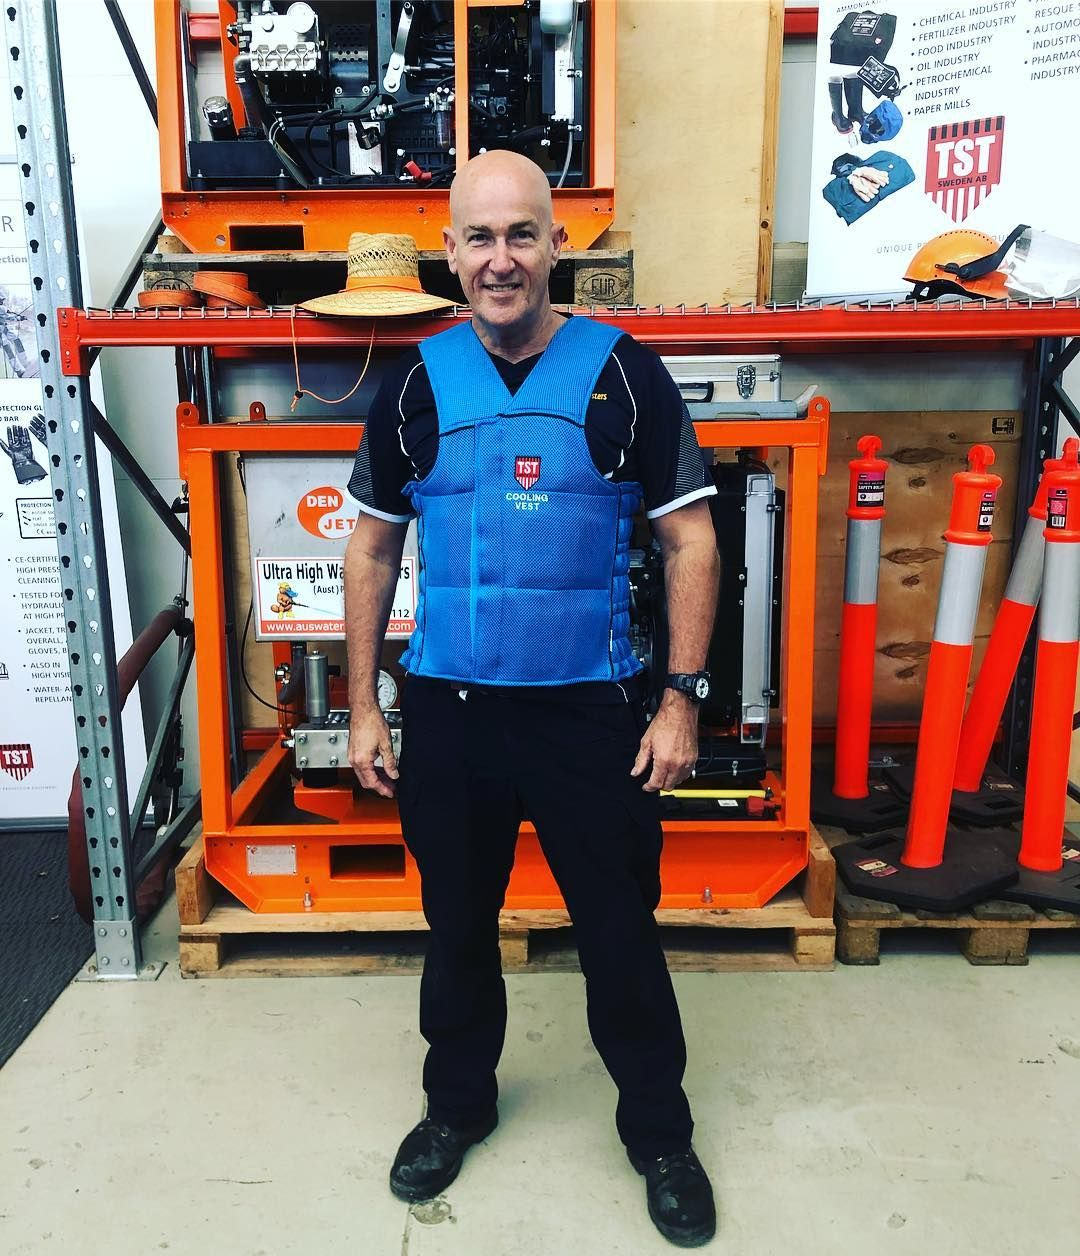 Cooling Clothing Vests For You Who Work In Warm Environments And